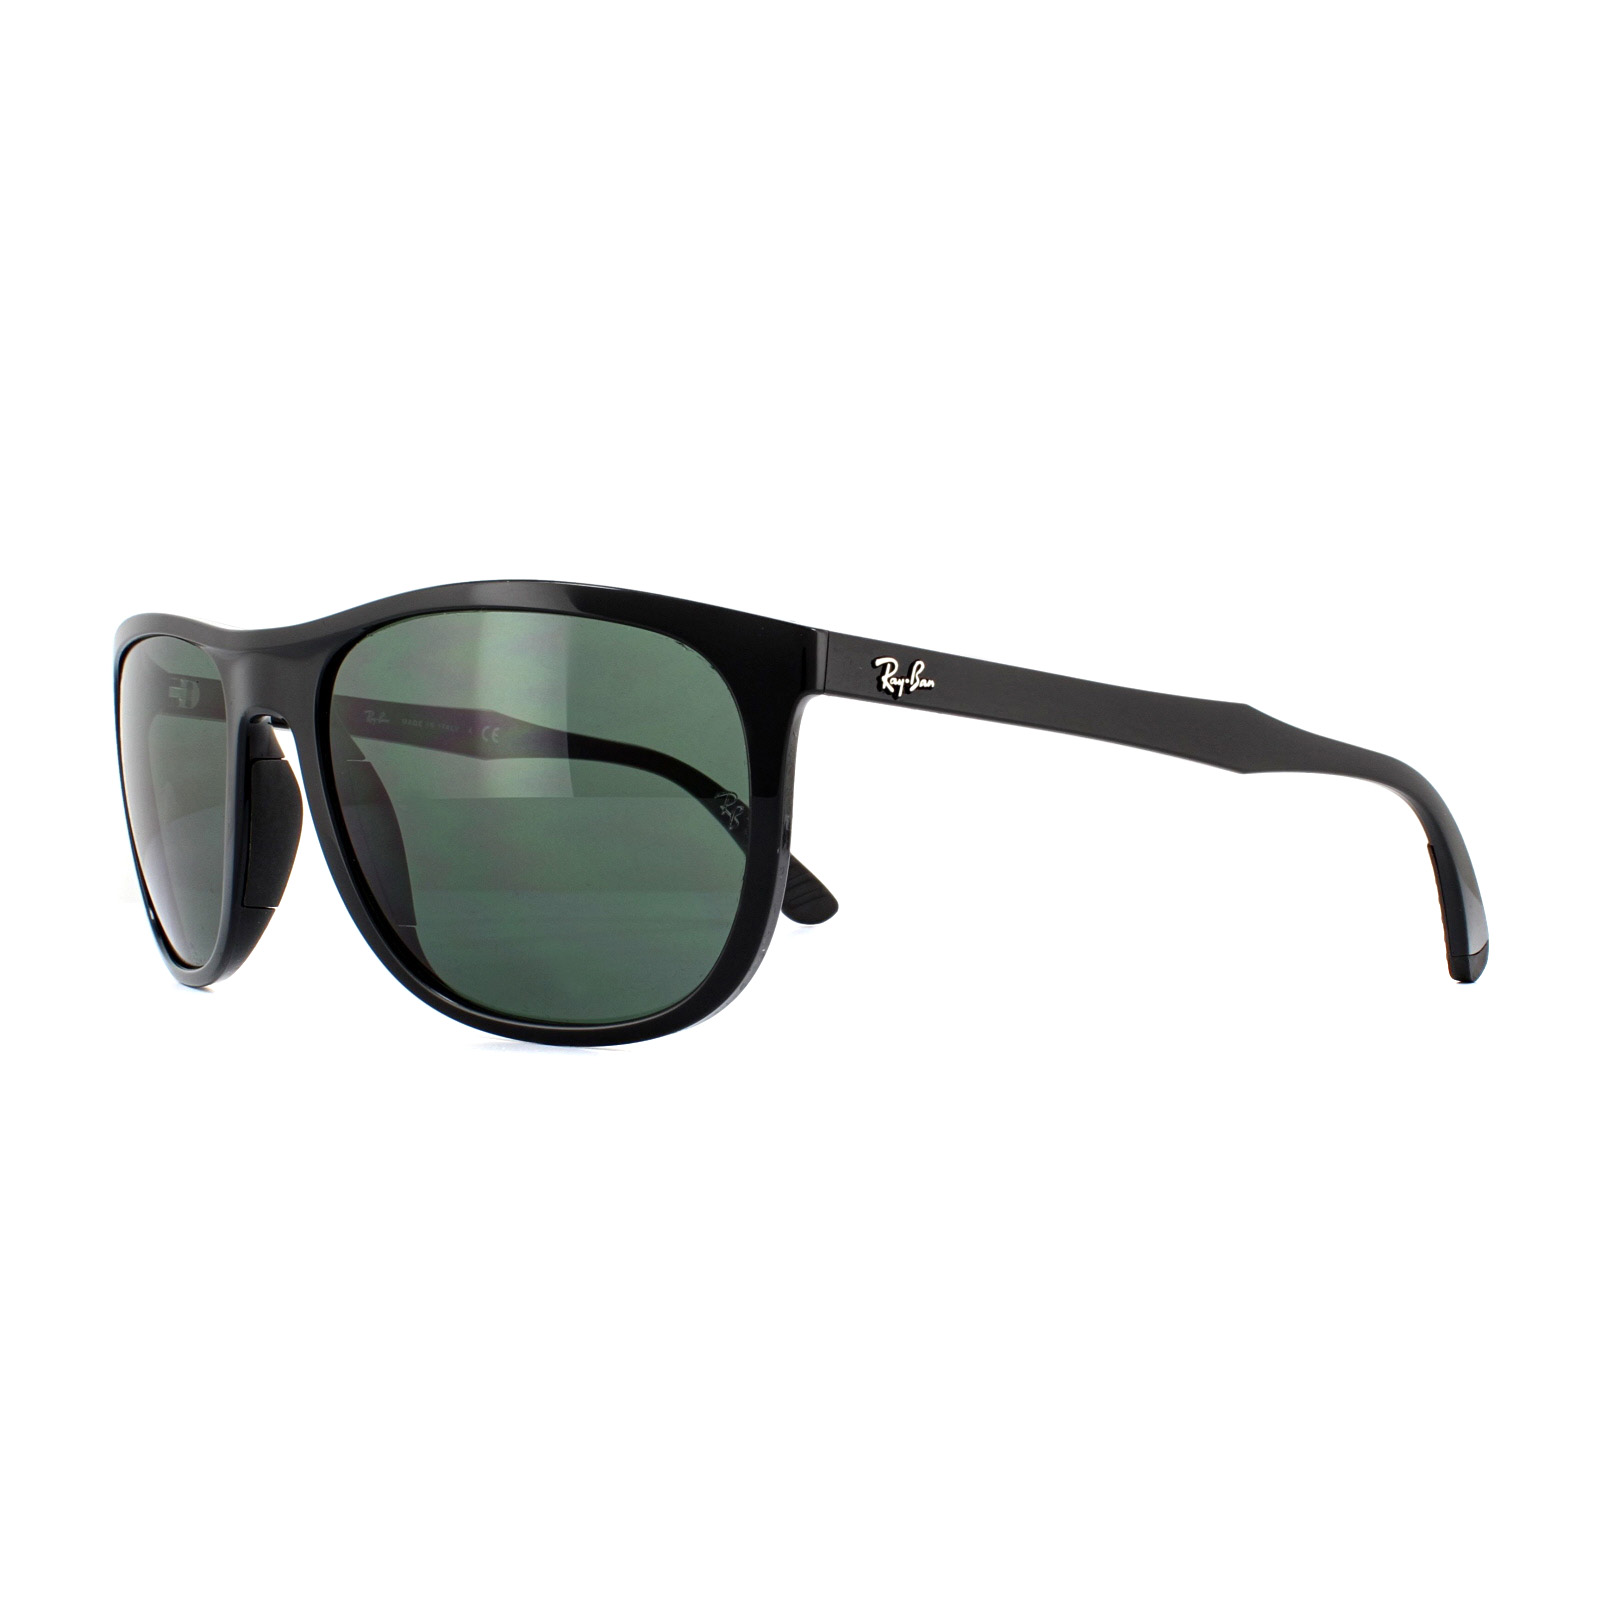 65b8249188 Ray-Ban Sunglasses RB4291 601 71 Black Green G-15 8053672828467